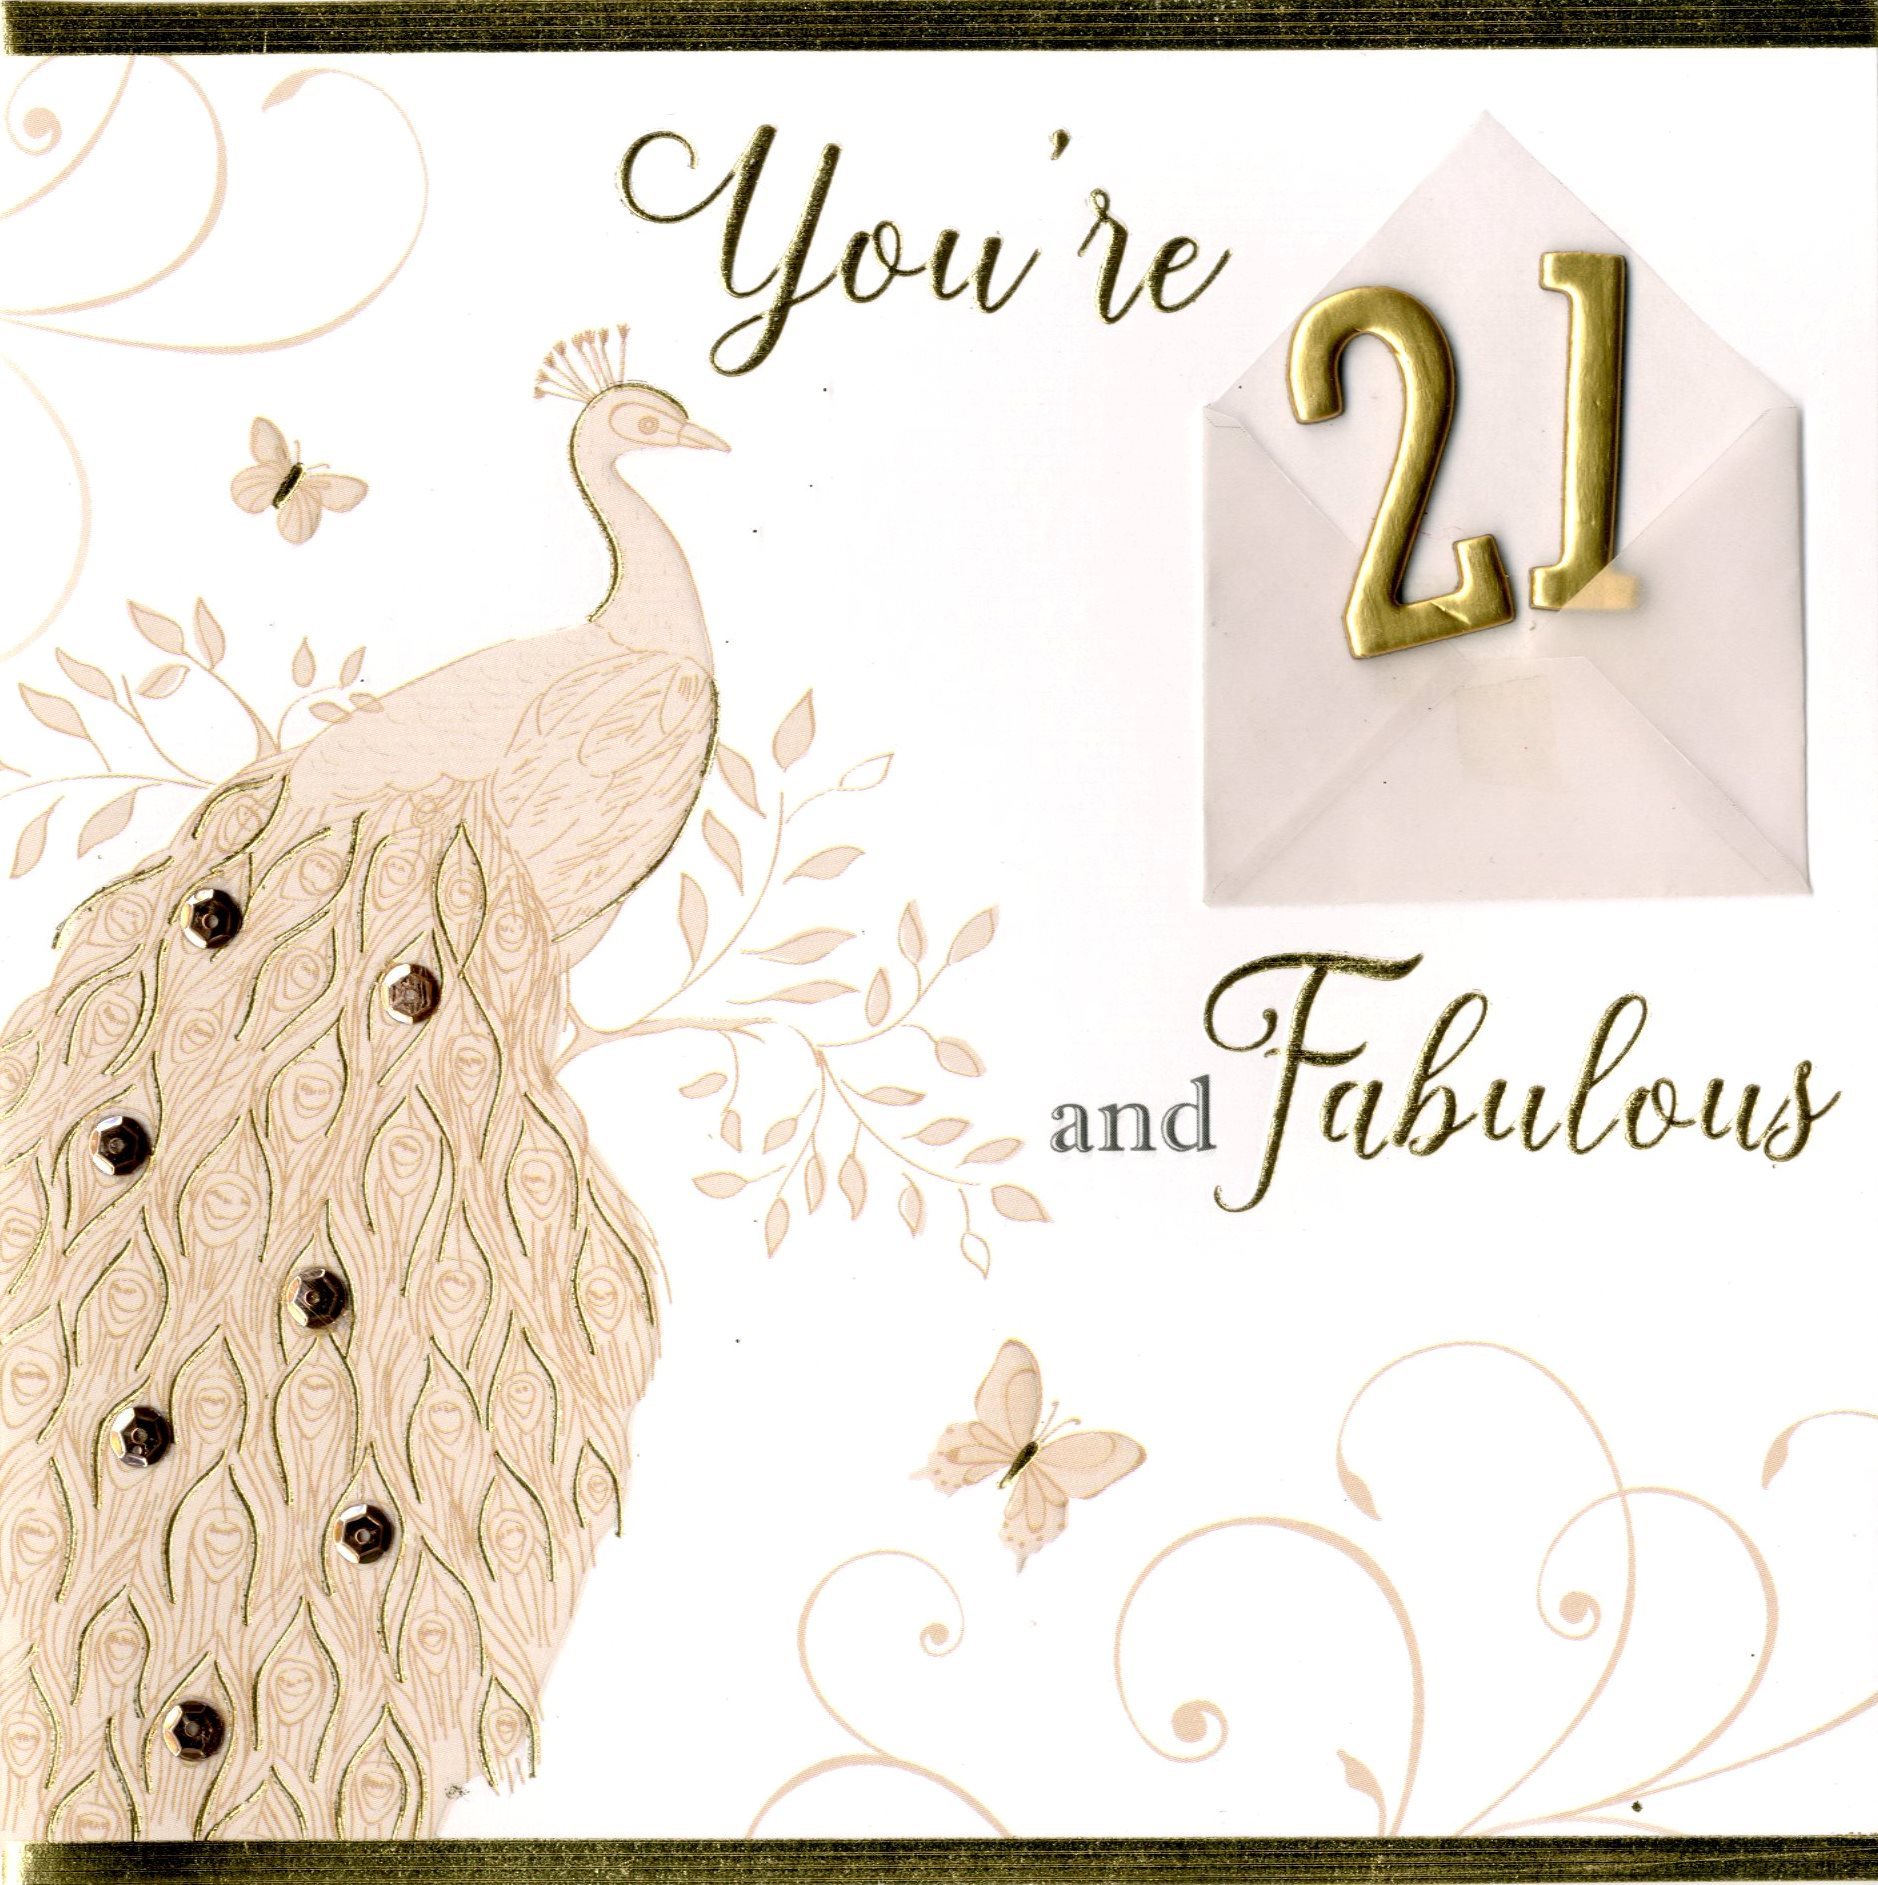 Fabulous 21st birthday greeting card cards love kates fabulous 21st birthday greeting card bookmarktalkfo Image collections